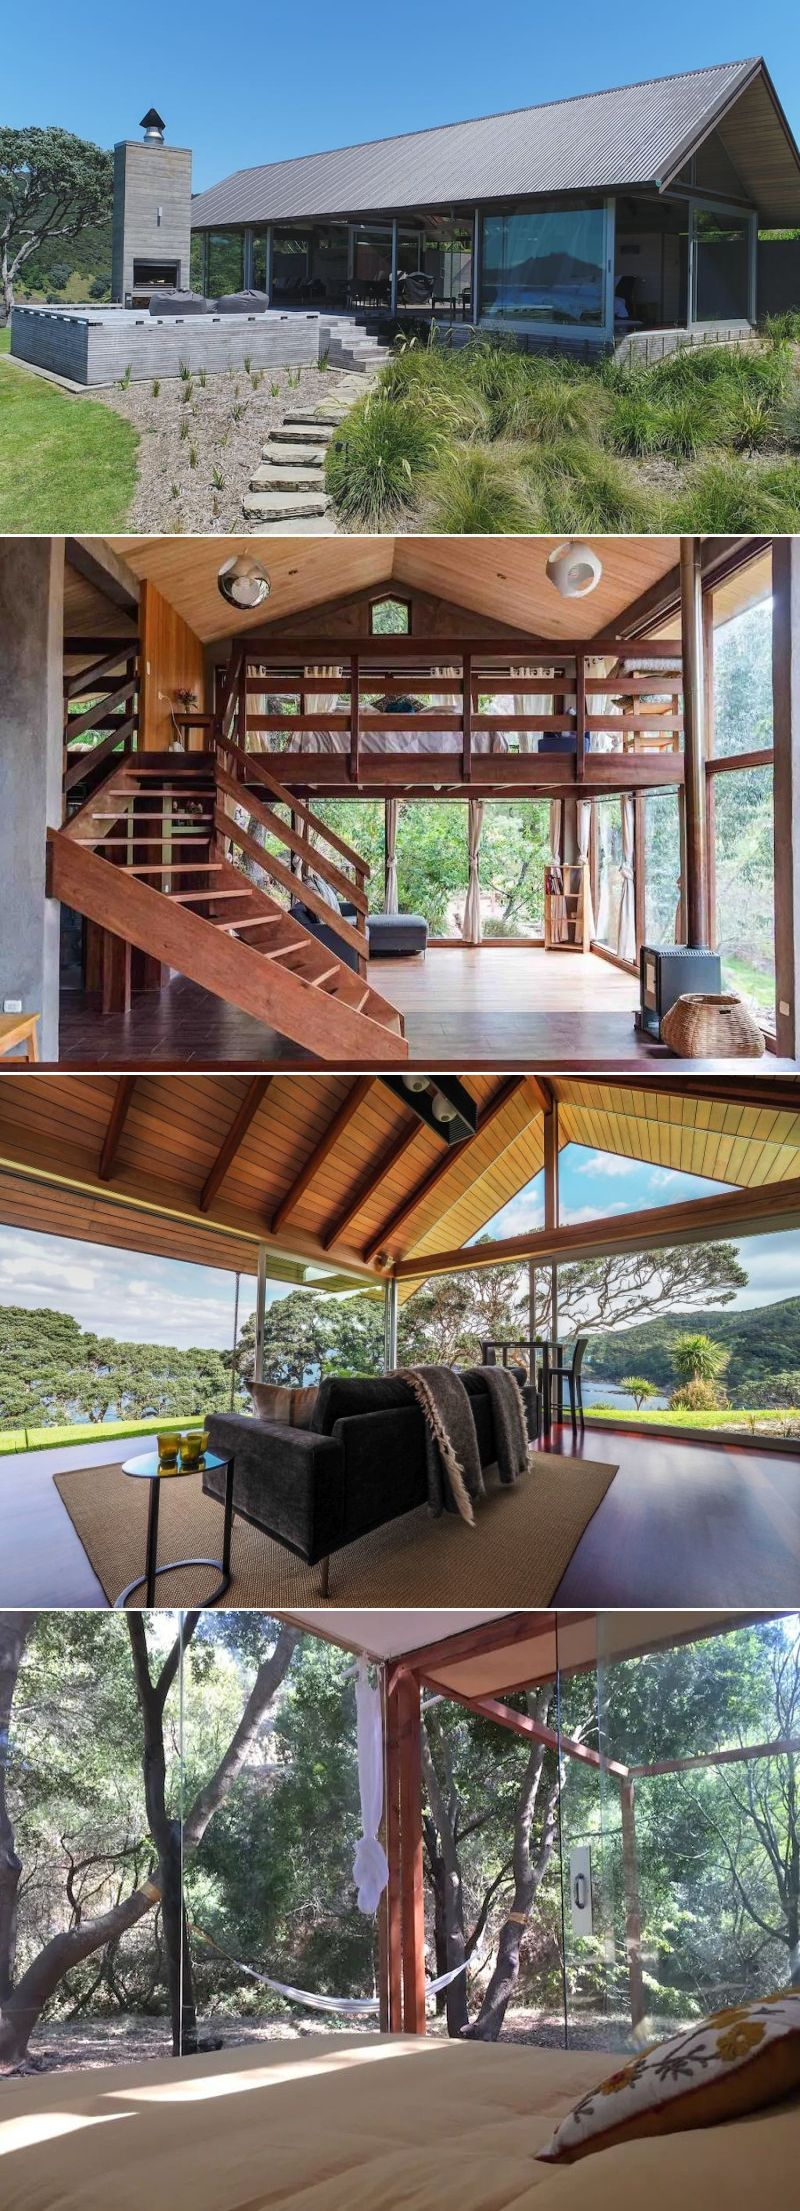 Glass House Rentals for Happy Times and Good Sunshine